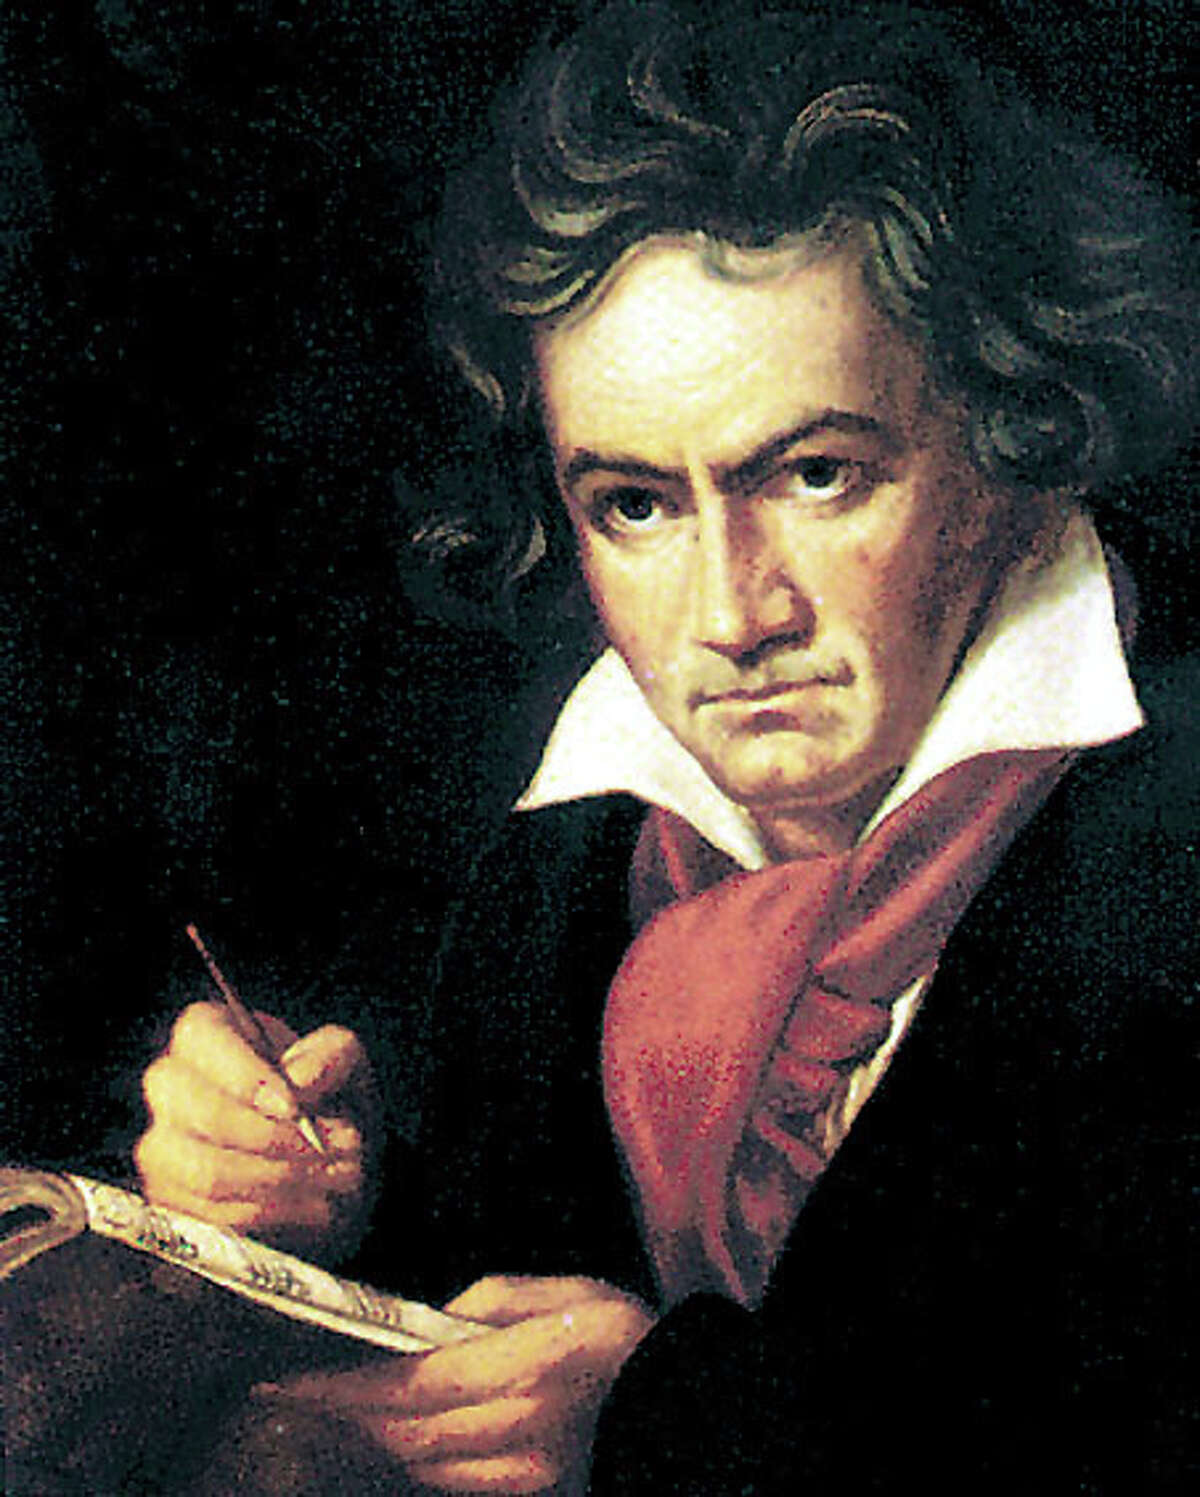 Beethoven came in No. 1, far surpassing the listeners of modern-day music by a longshot. Those who jam out to this classic artist scored an average of 1325-1400 on their SATs.